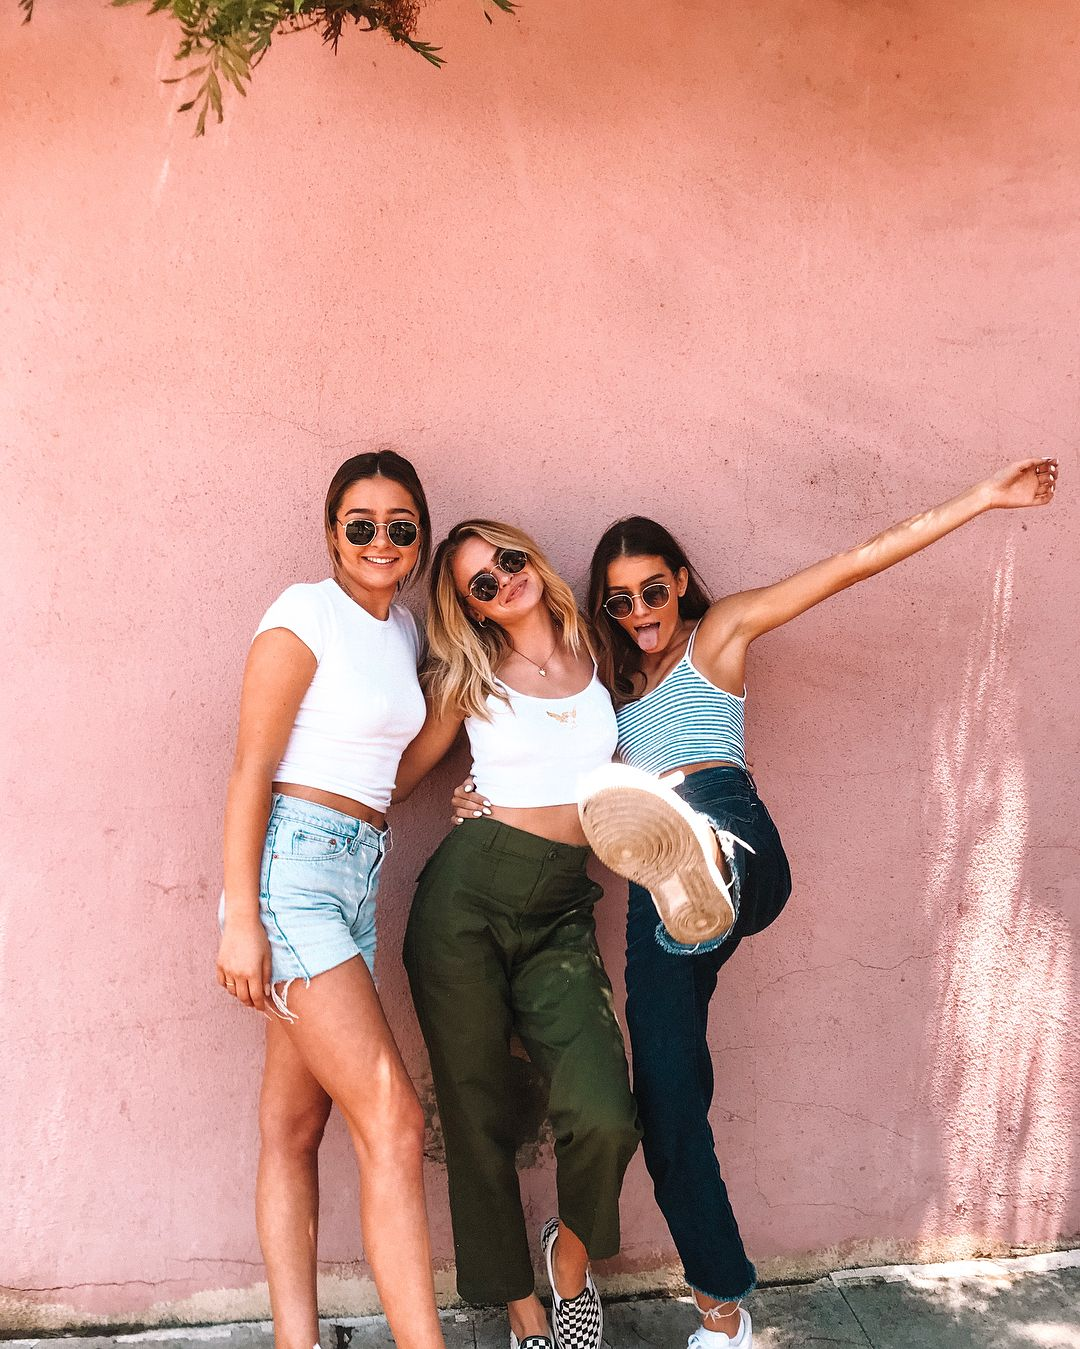 Group Selfie Poses For 3 Friends This is a great pose if. group selfie poses for 3 friends